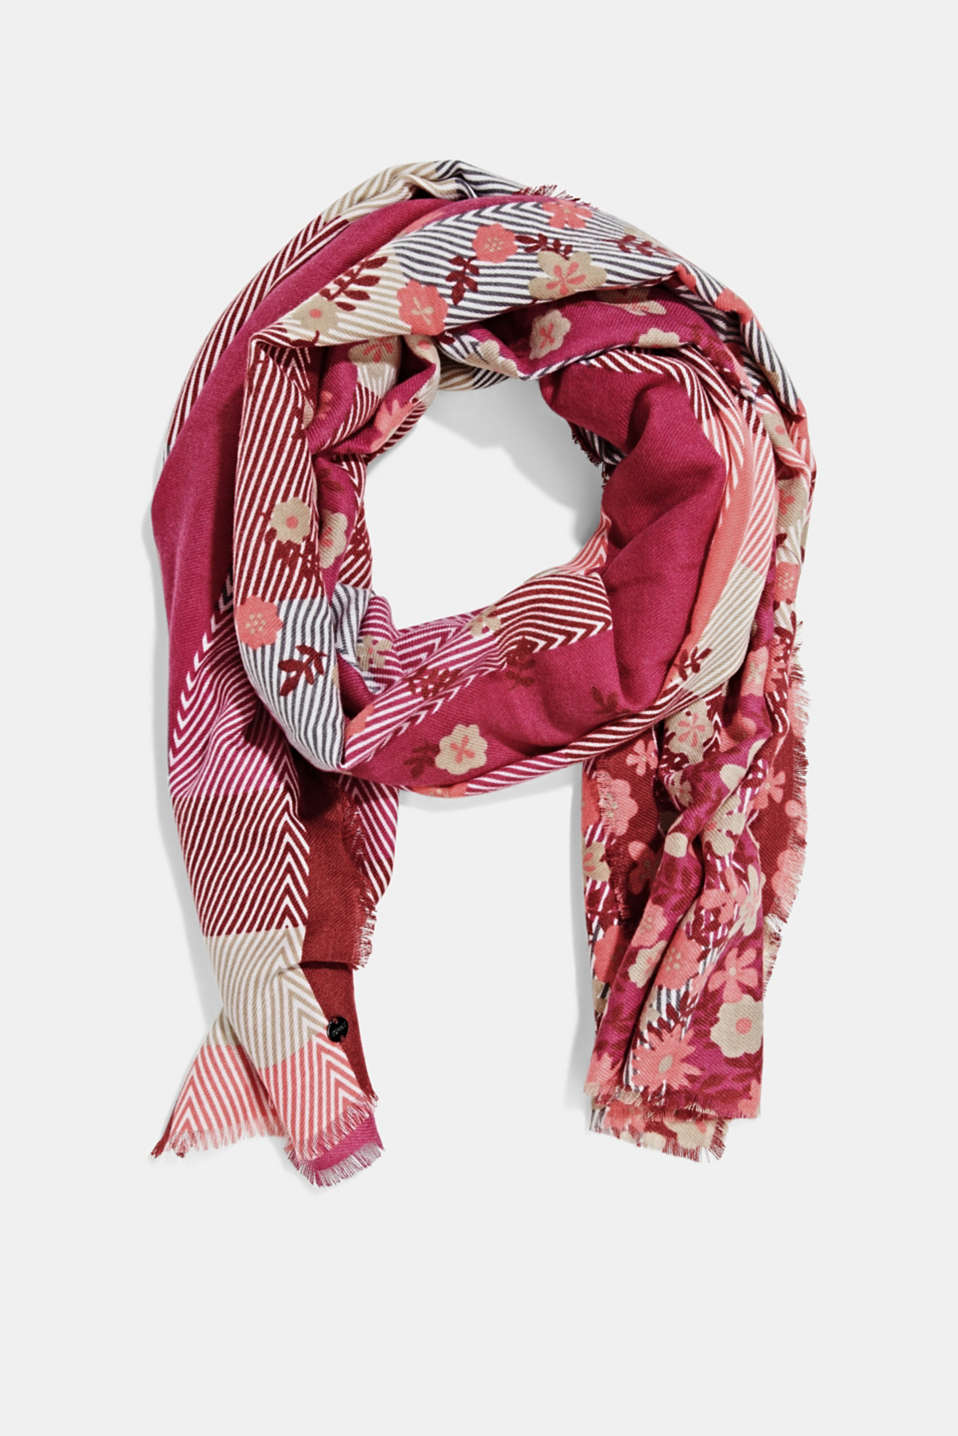 Esprit - Recycled: woven scarf with a mix of patterns